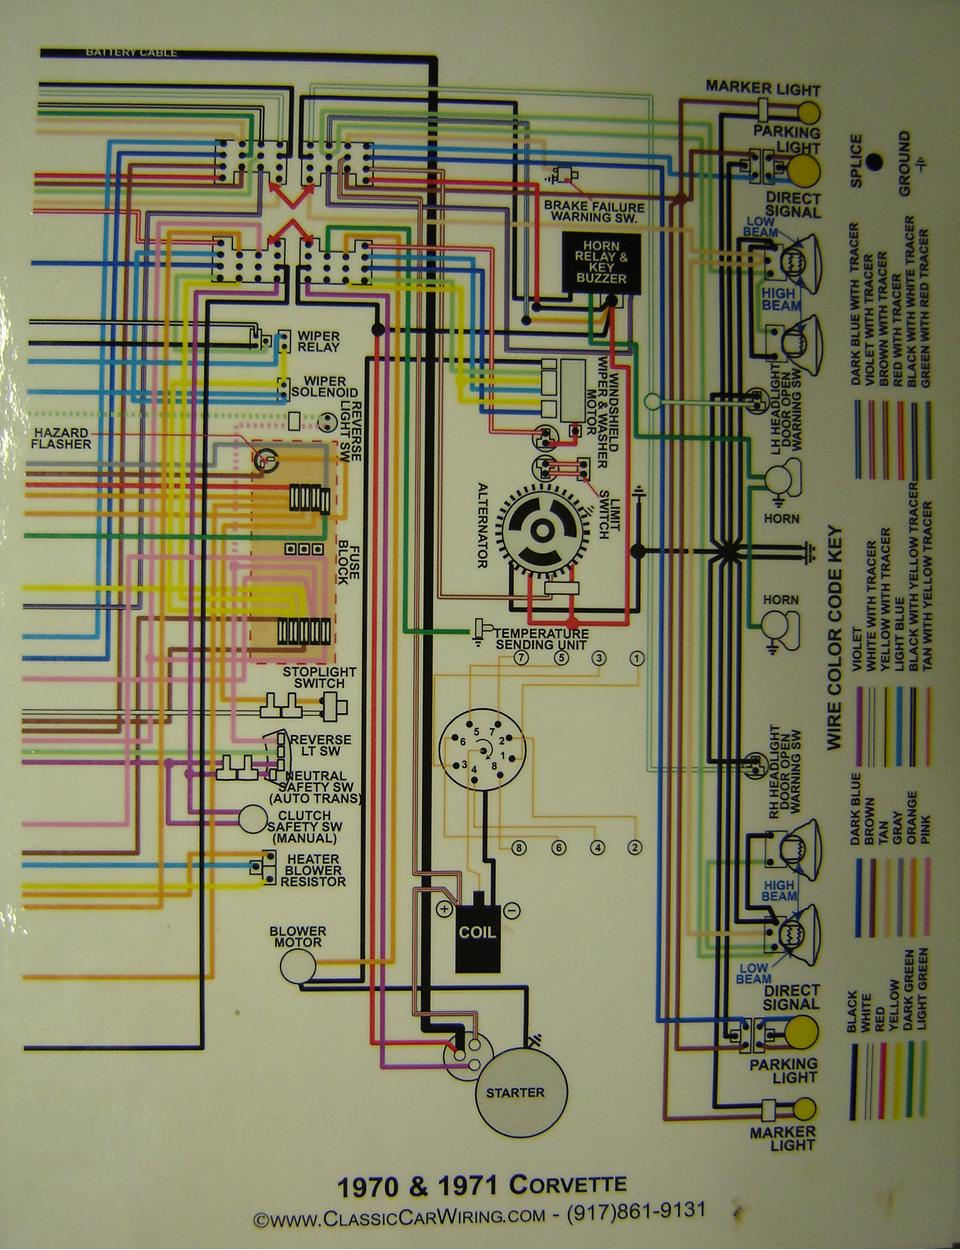 wiring harness 72 nova best wiring library 1963 Chevy Nova Wiring Diagram 1972 Nova Wiring Diagrams Automotive #8